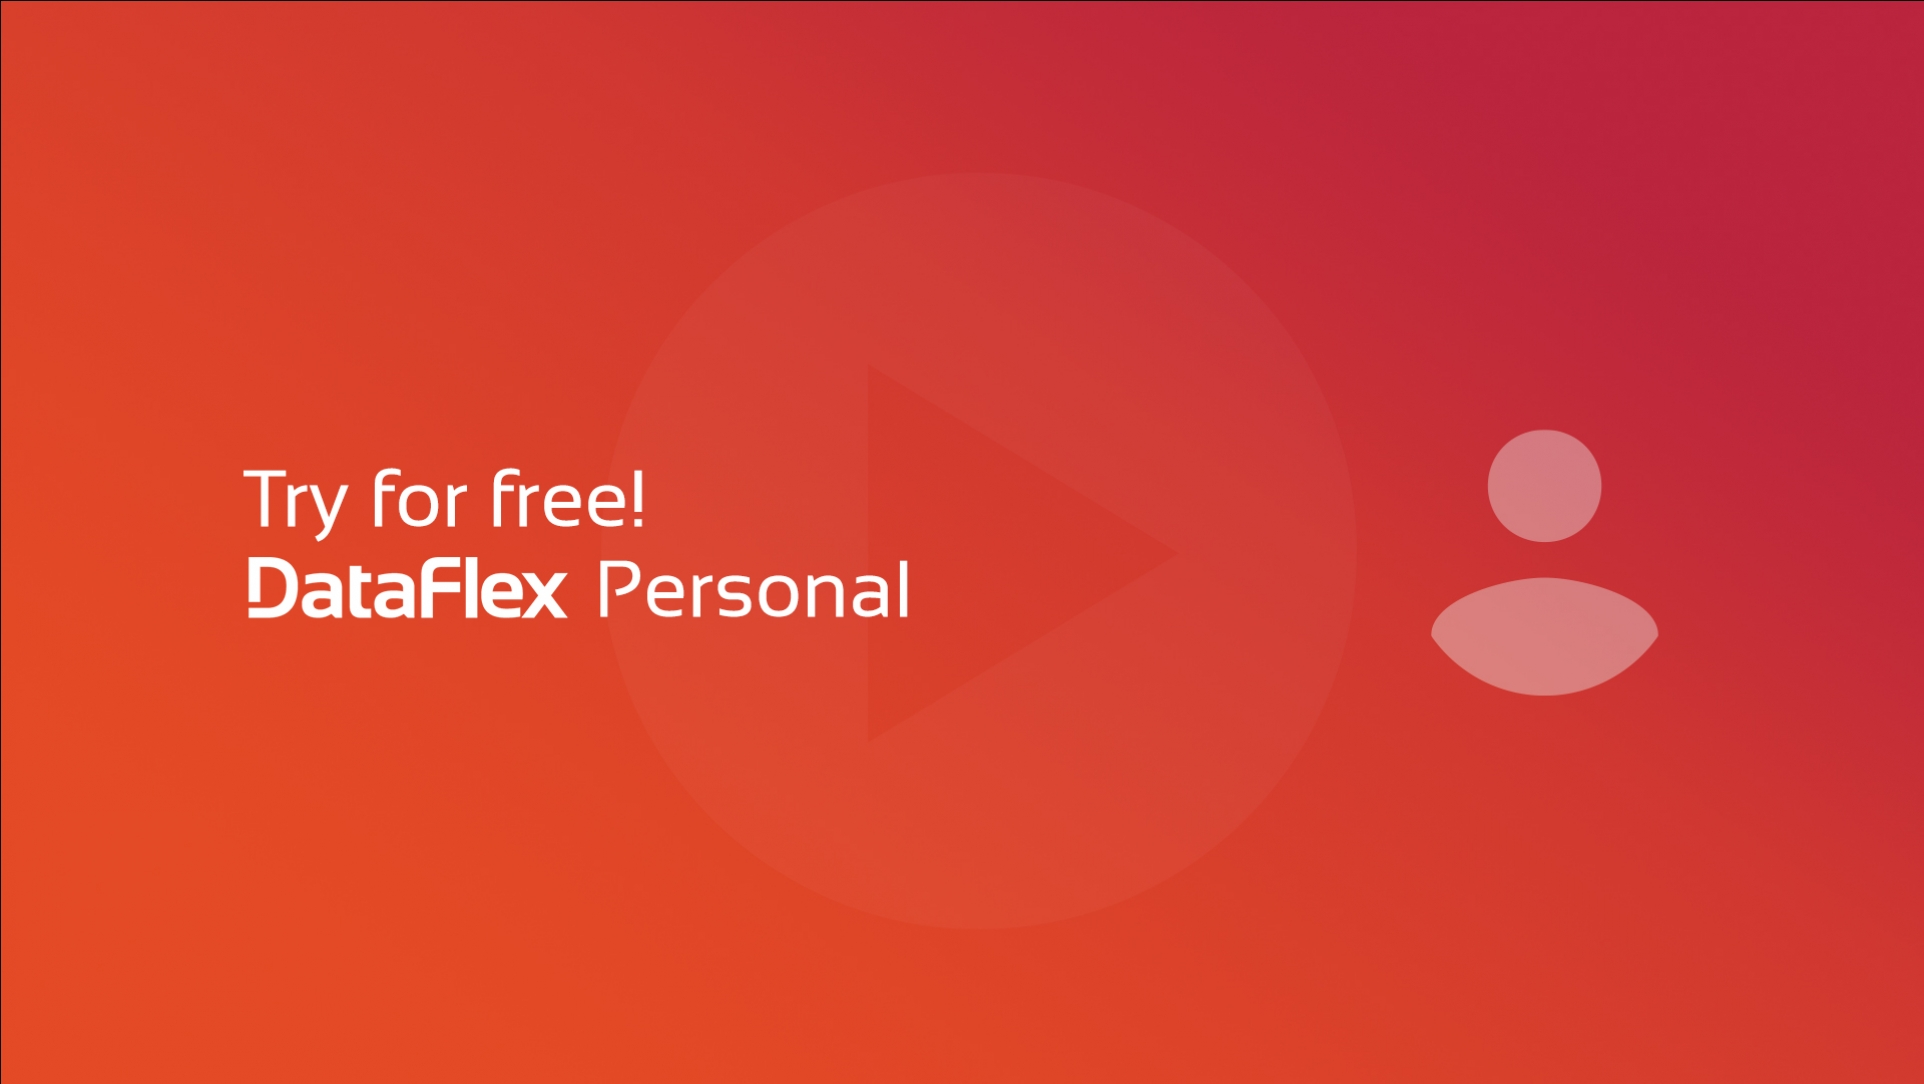 New video course: Try for free - DataFlex Personal